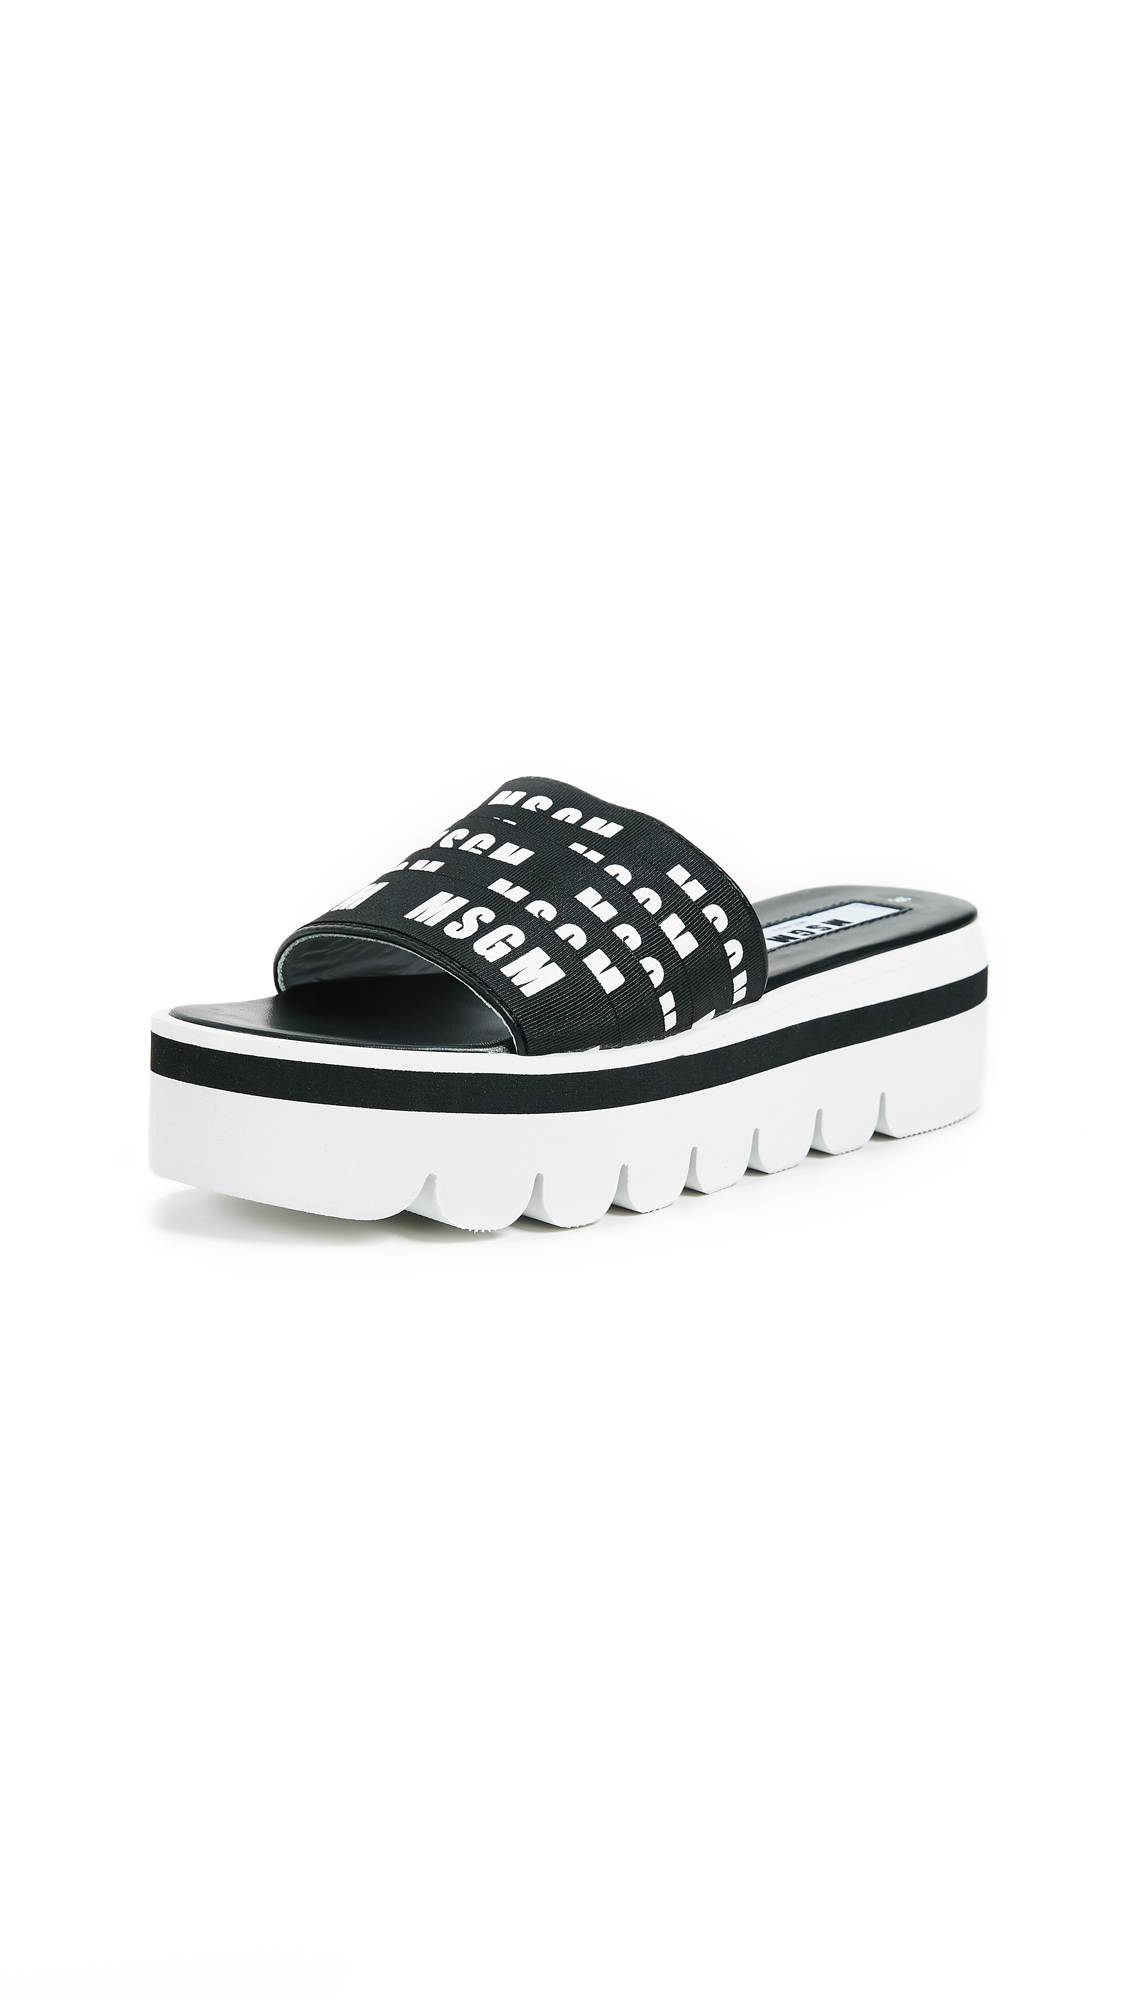 MSGM Multi Strap Logo High Wedge Sandals - Black/White